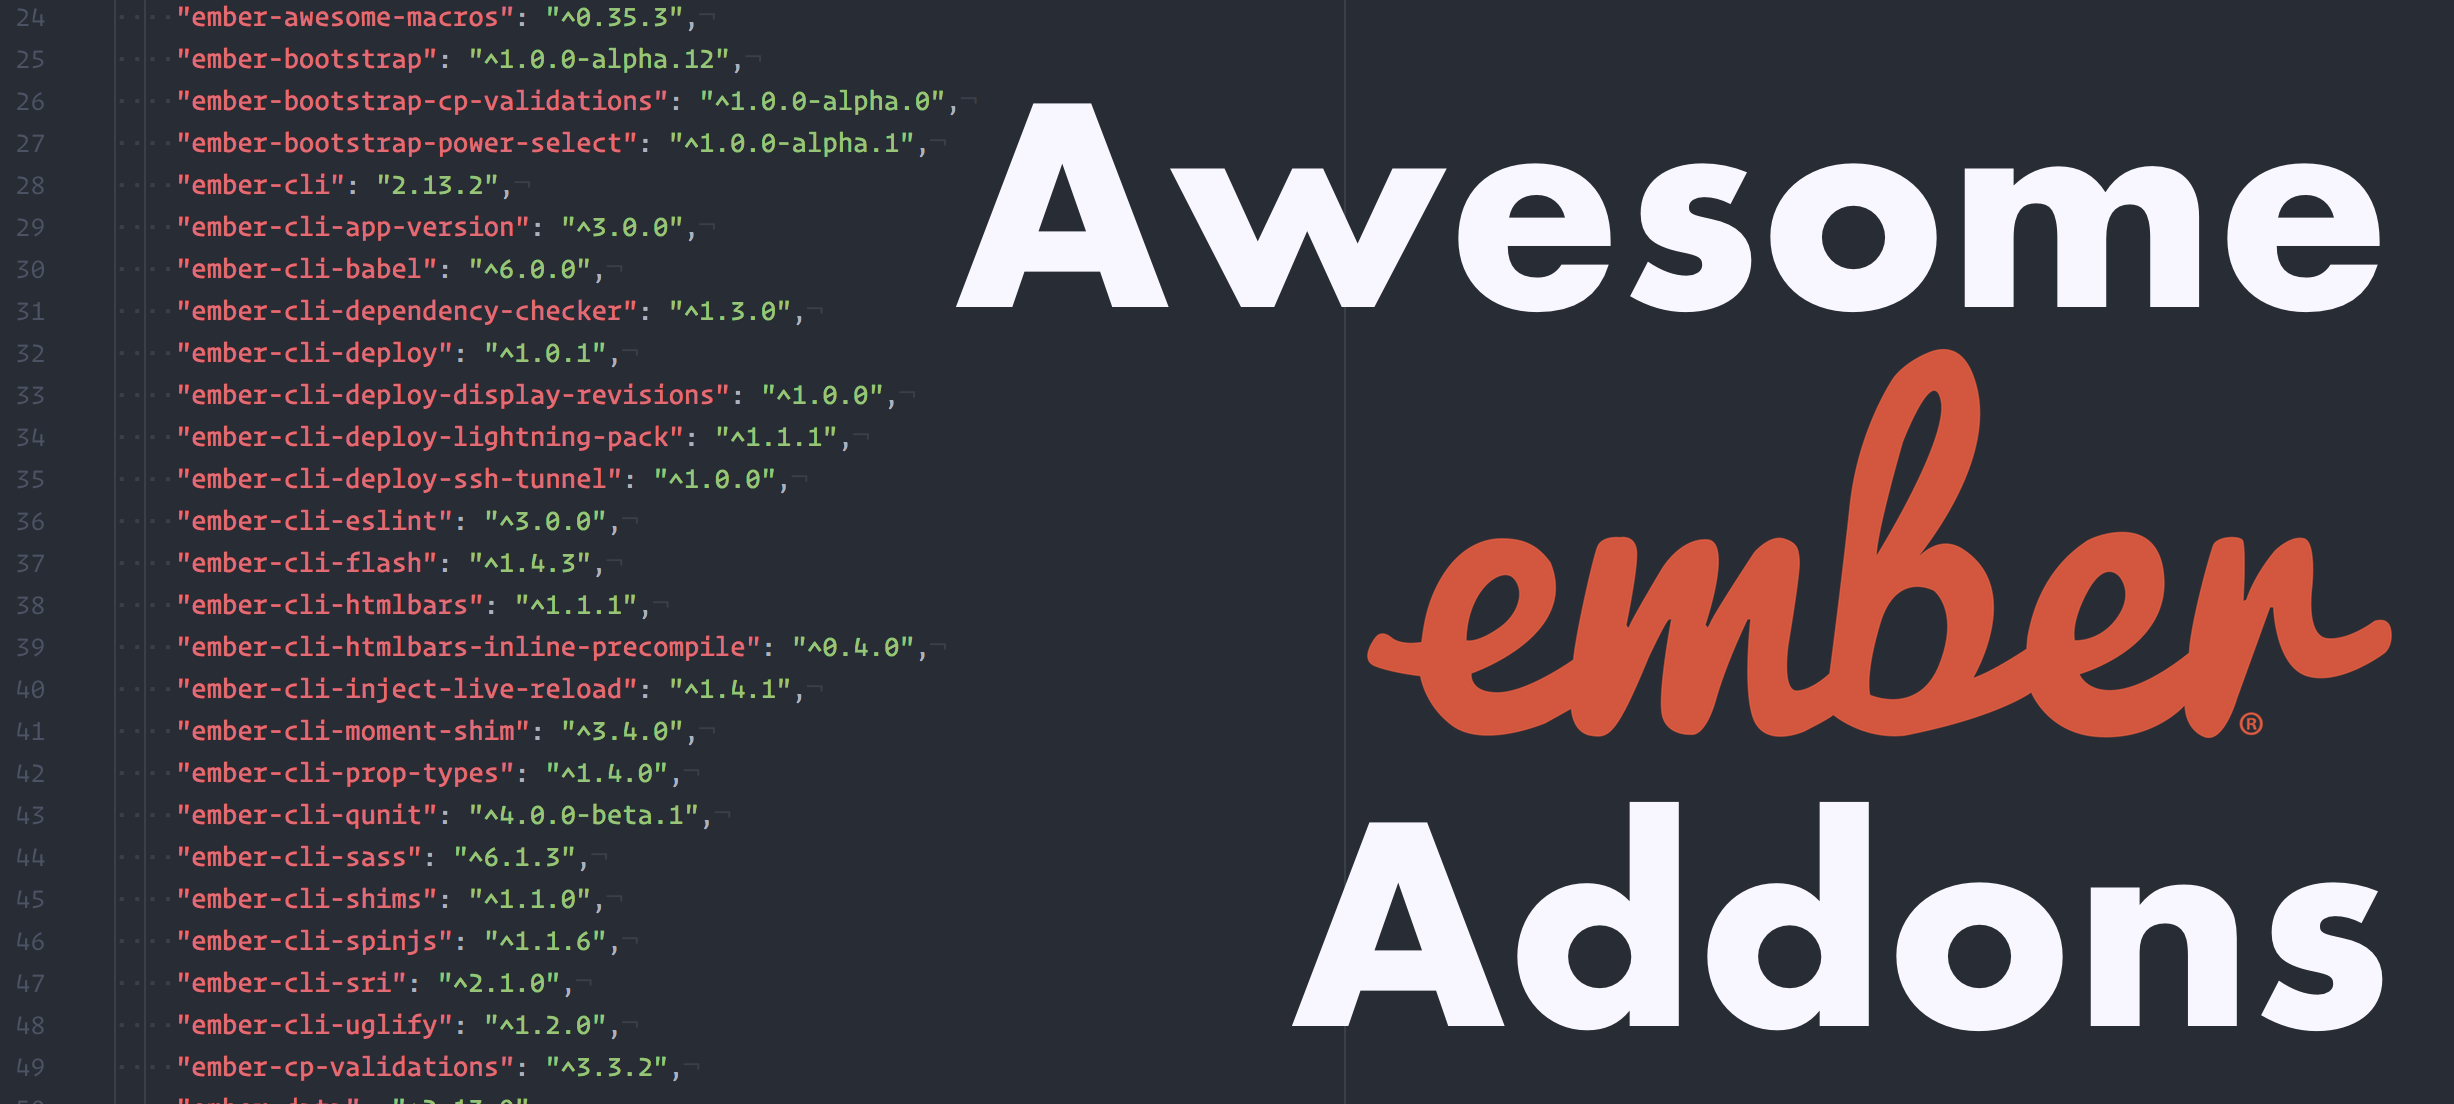 Awesome EmberAddons